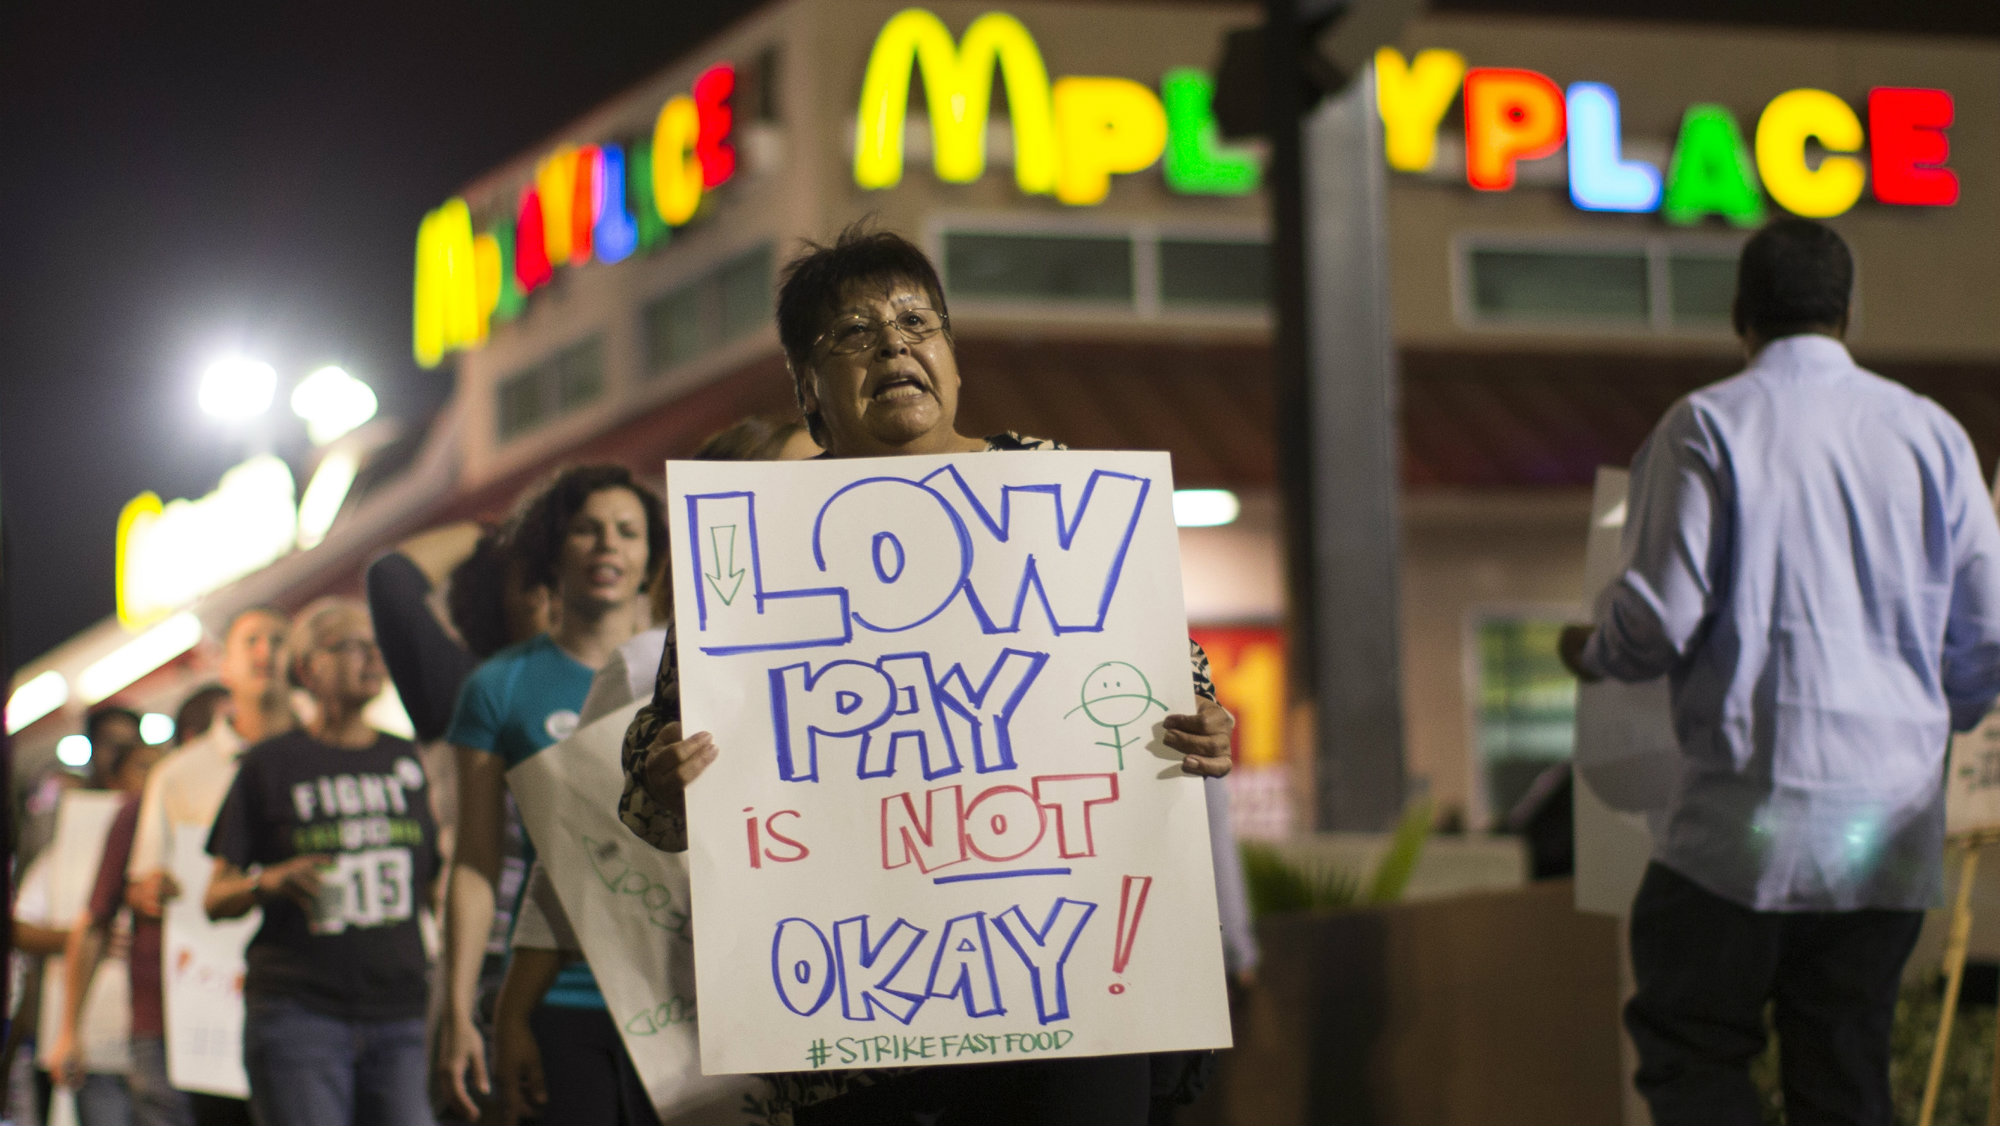 Activists hold signs outside a McDonald's restaurant in Los Angeles, California during a protest demanding better wages for fast-food workers